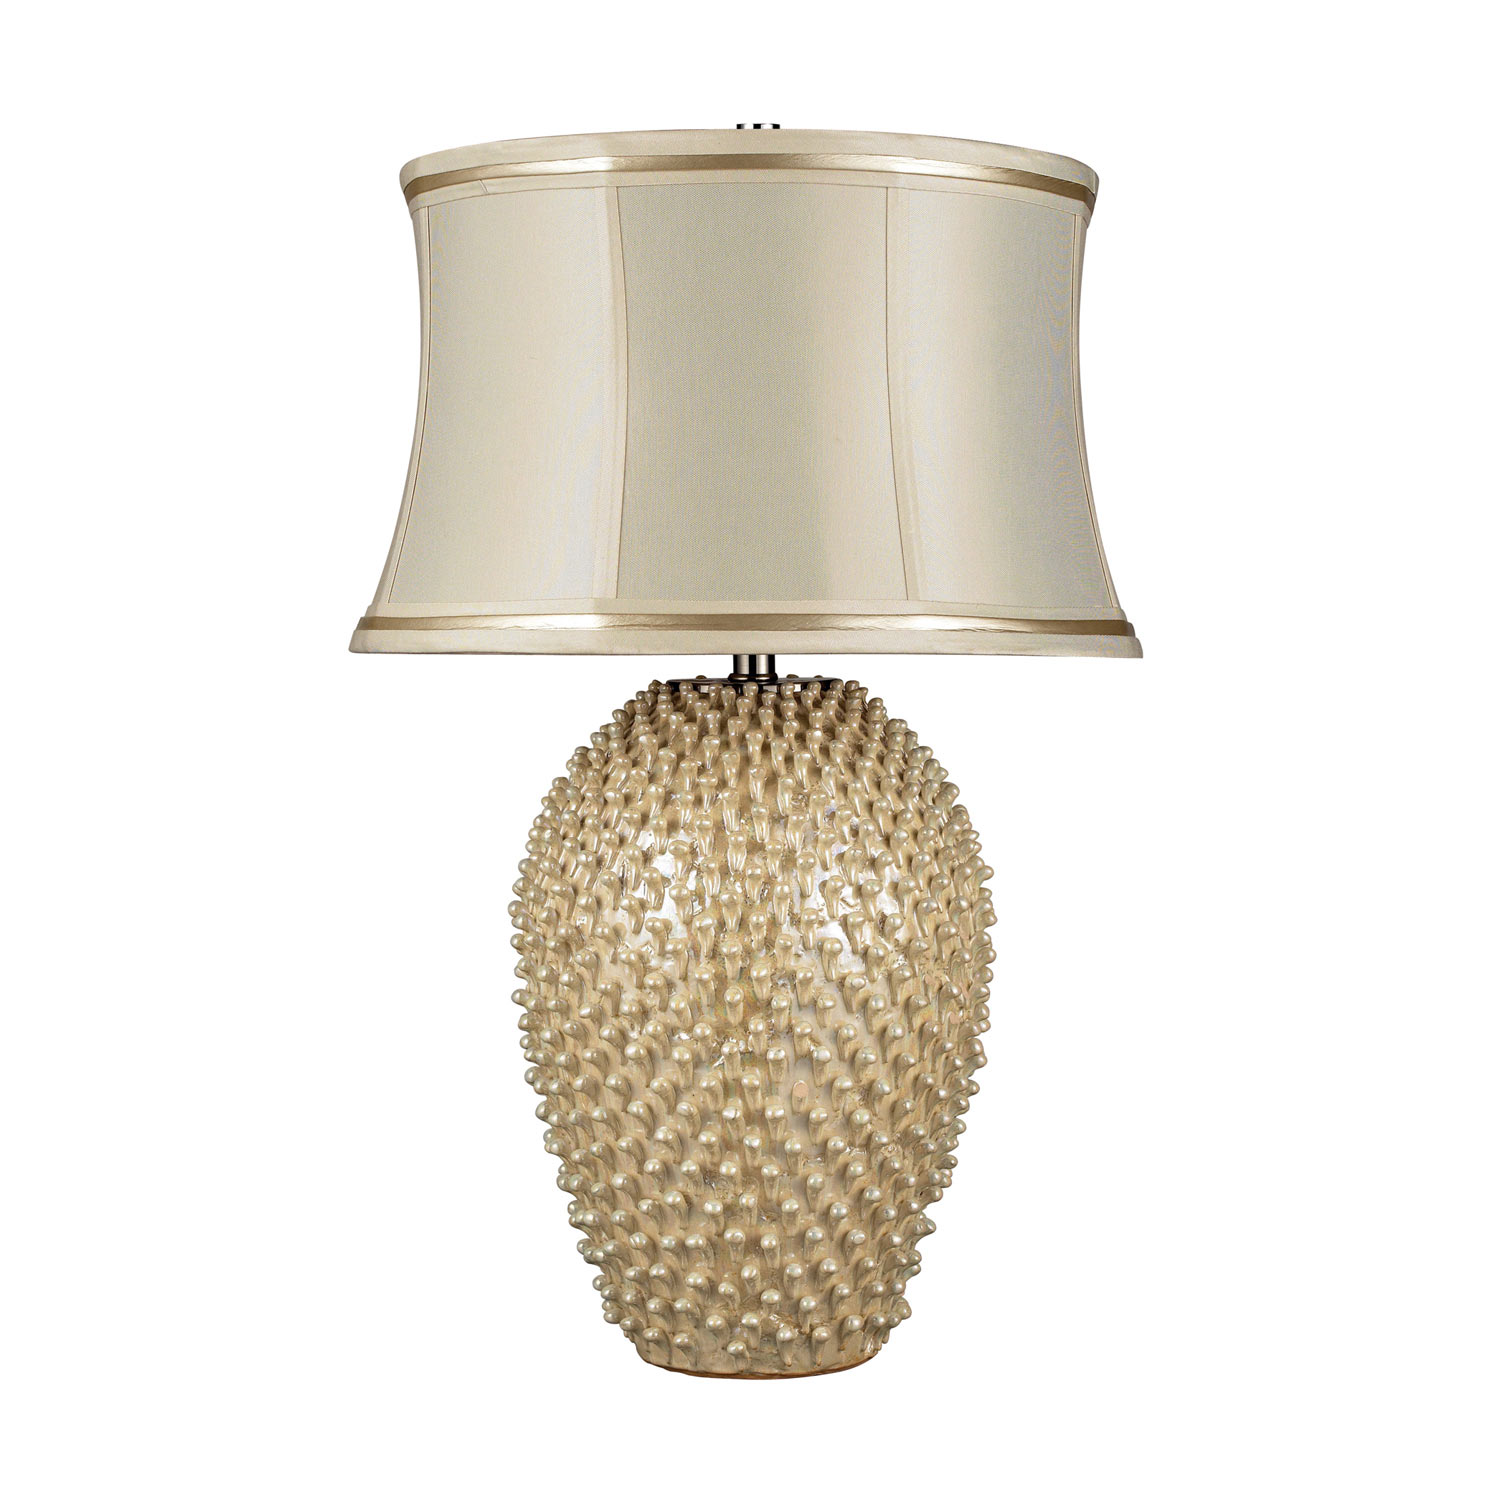 Elk Lighting D2112 Pineville Table Lamp - Pearlescent Cream